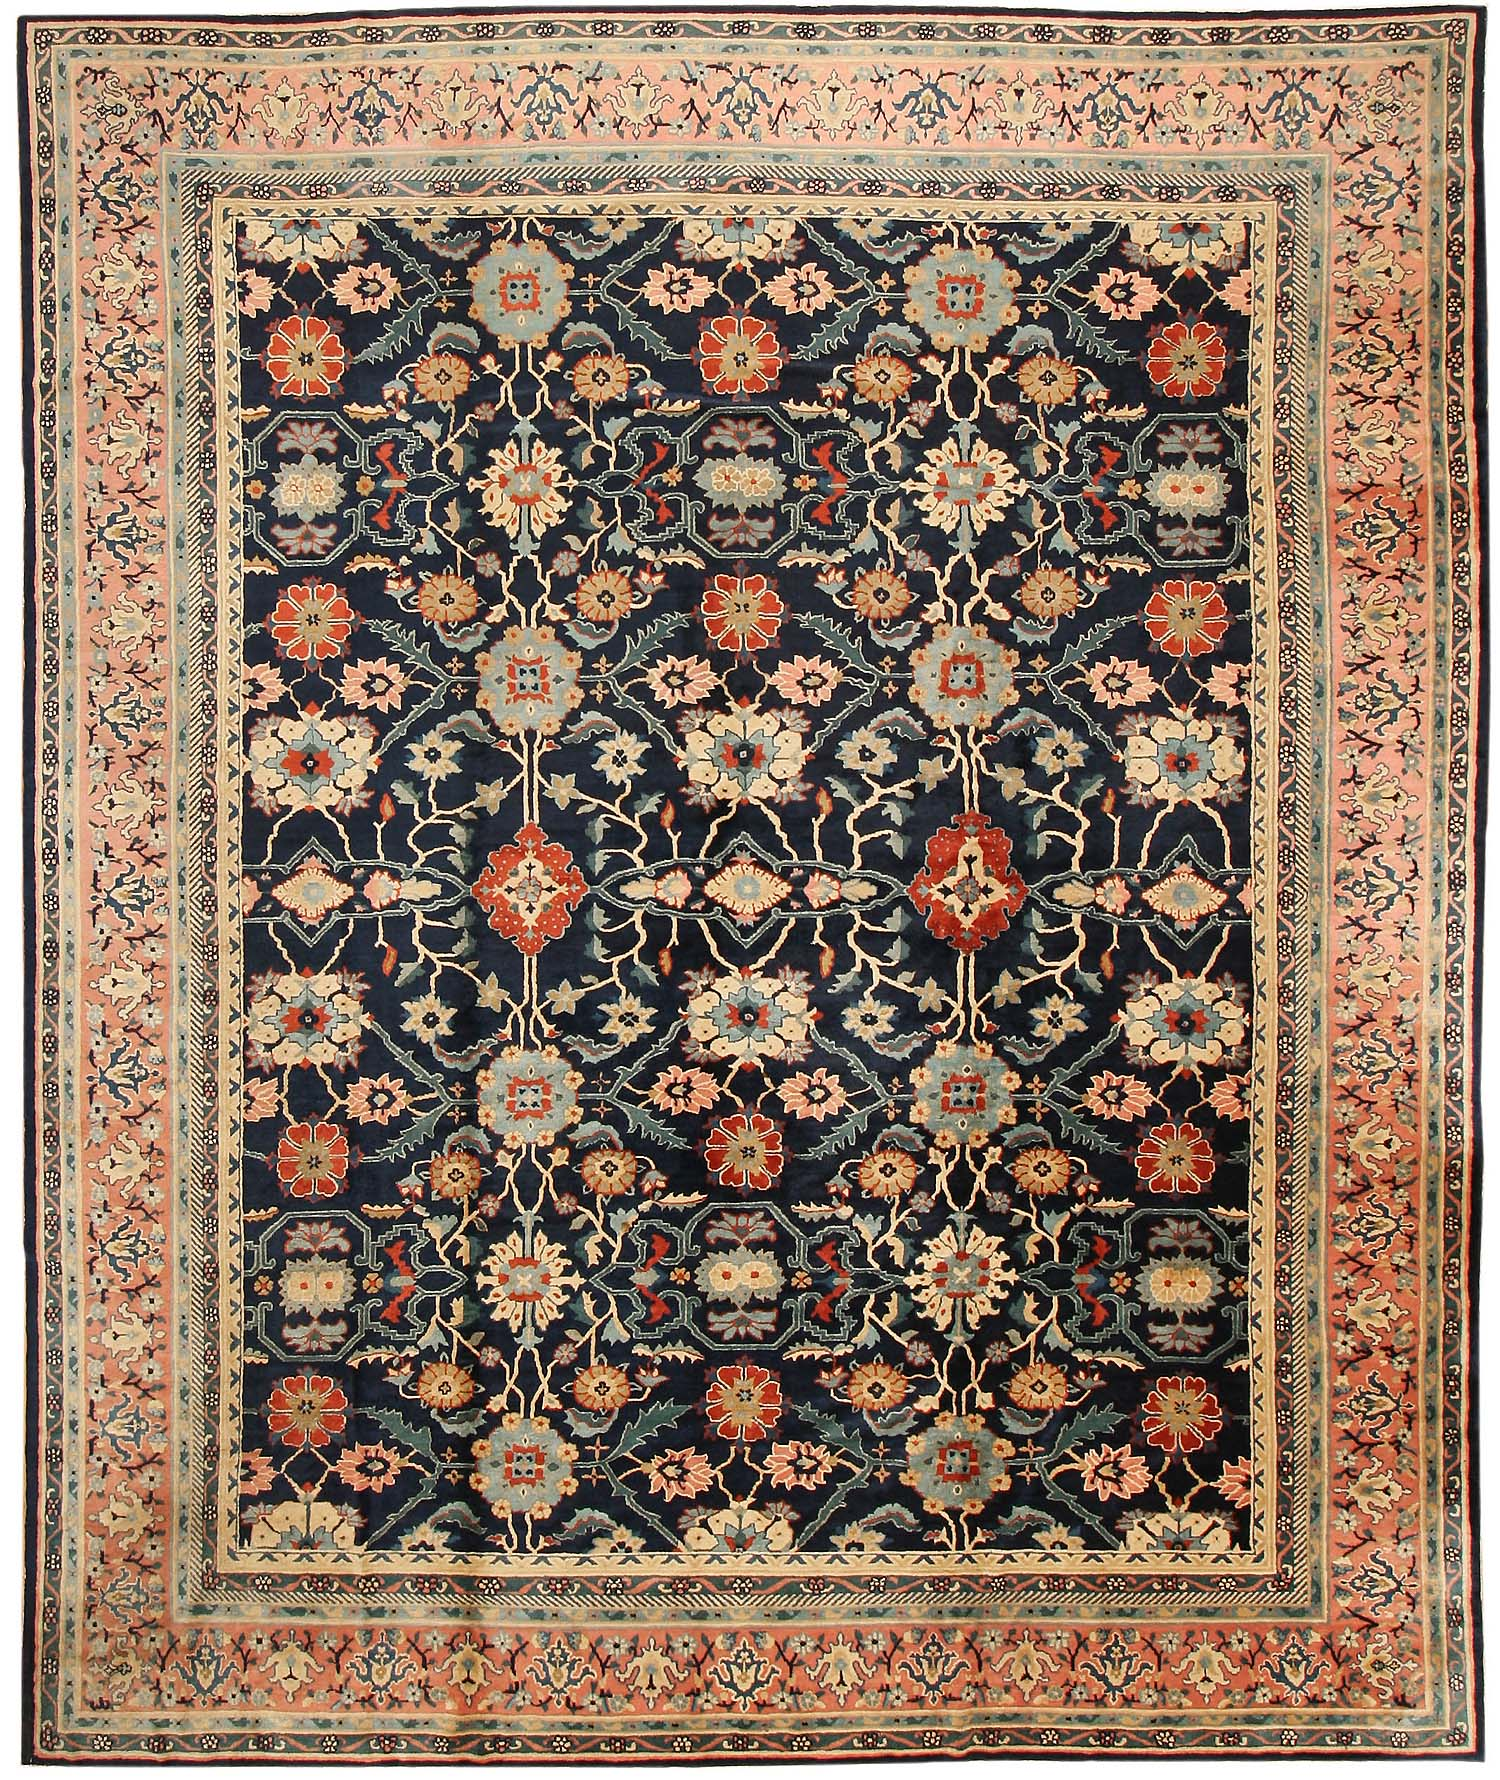 Chinese Carpets And Rugs: Antique Chinese Oriental Rugs # 43423 For Sale